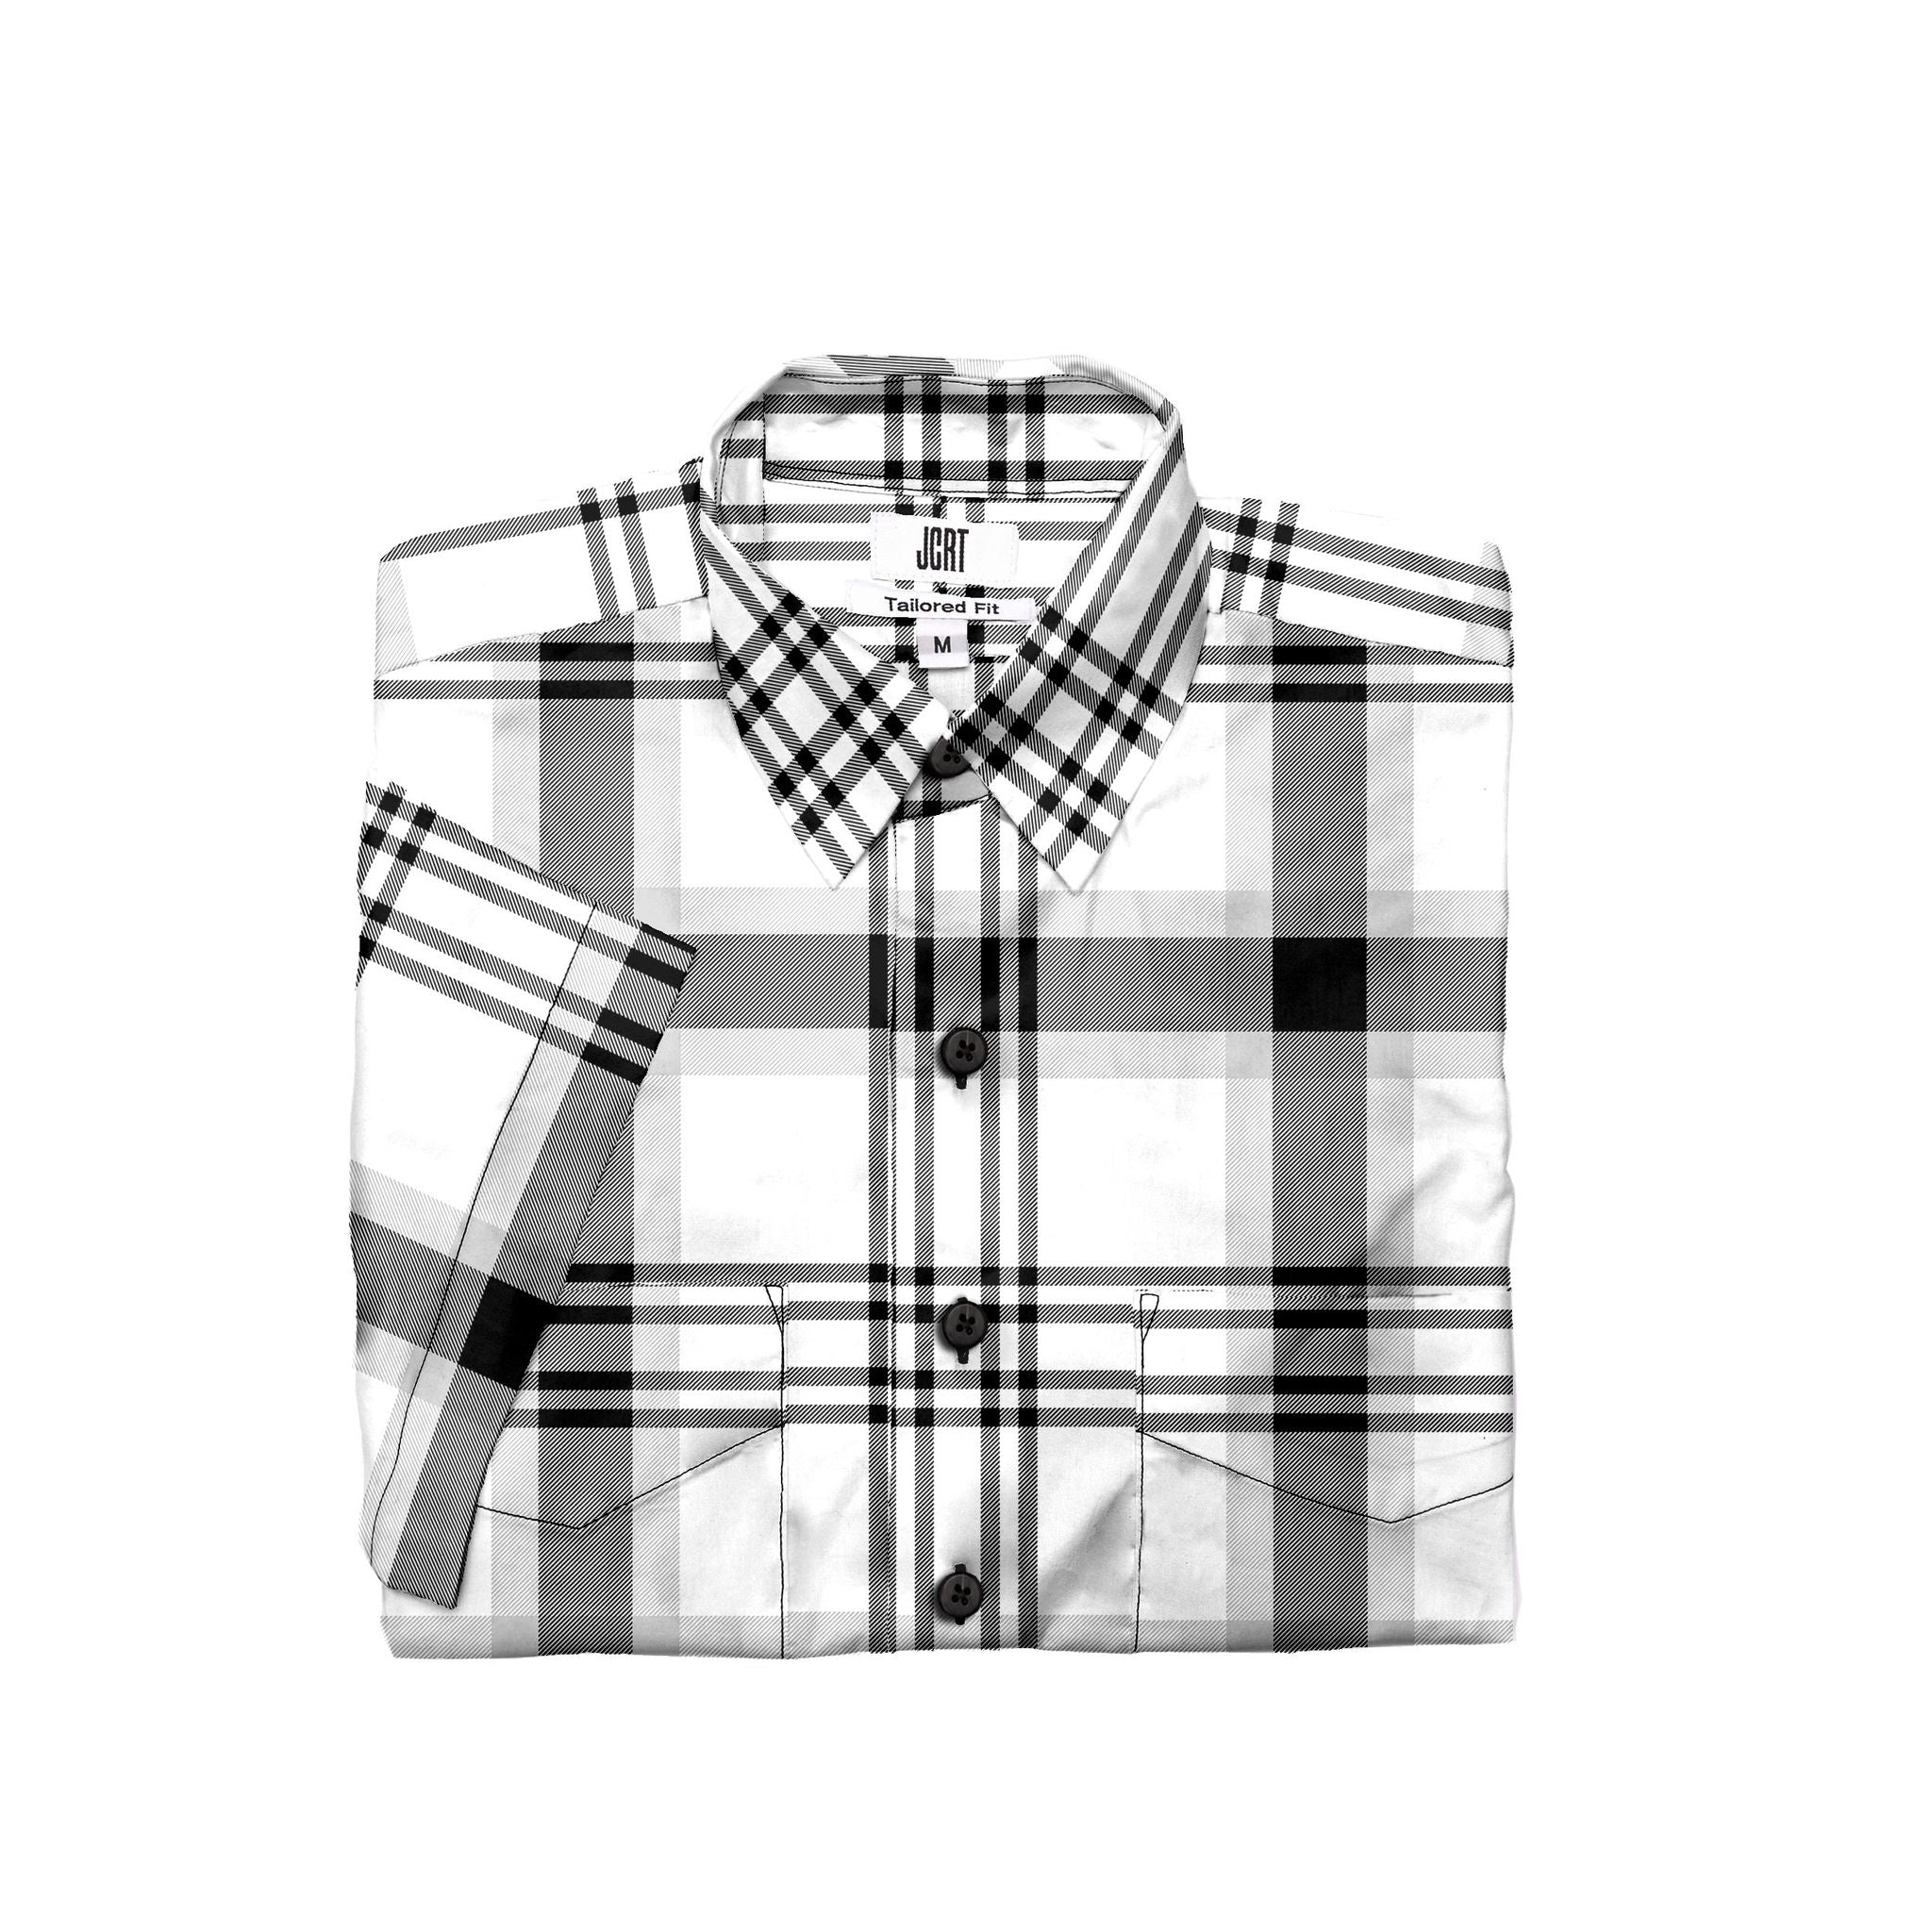 The Selecter Plaid Short Sleeve Shirt